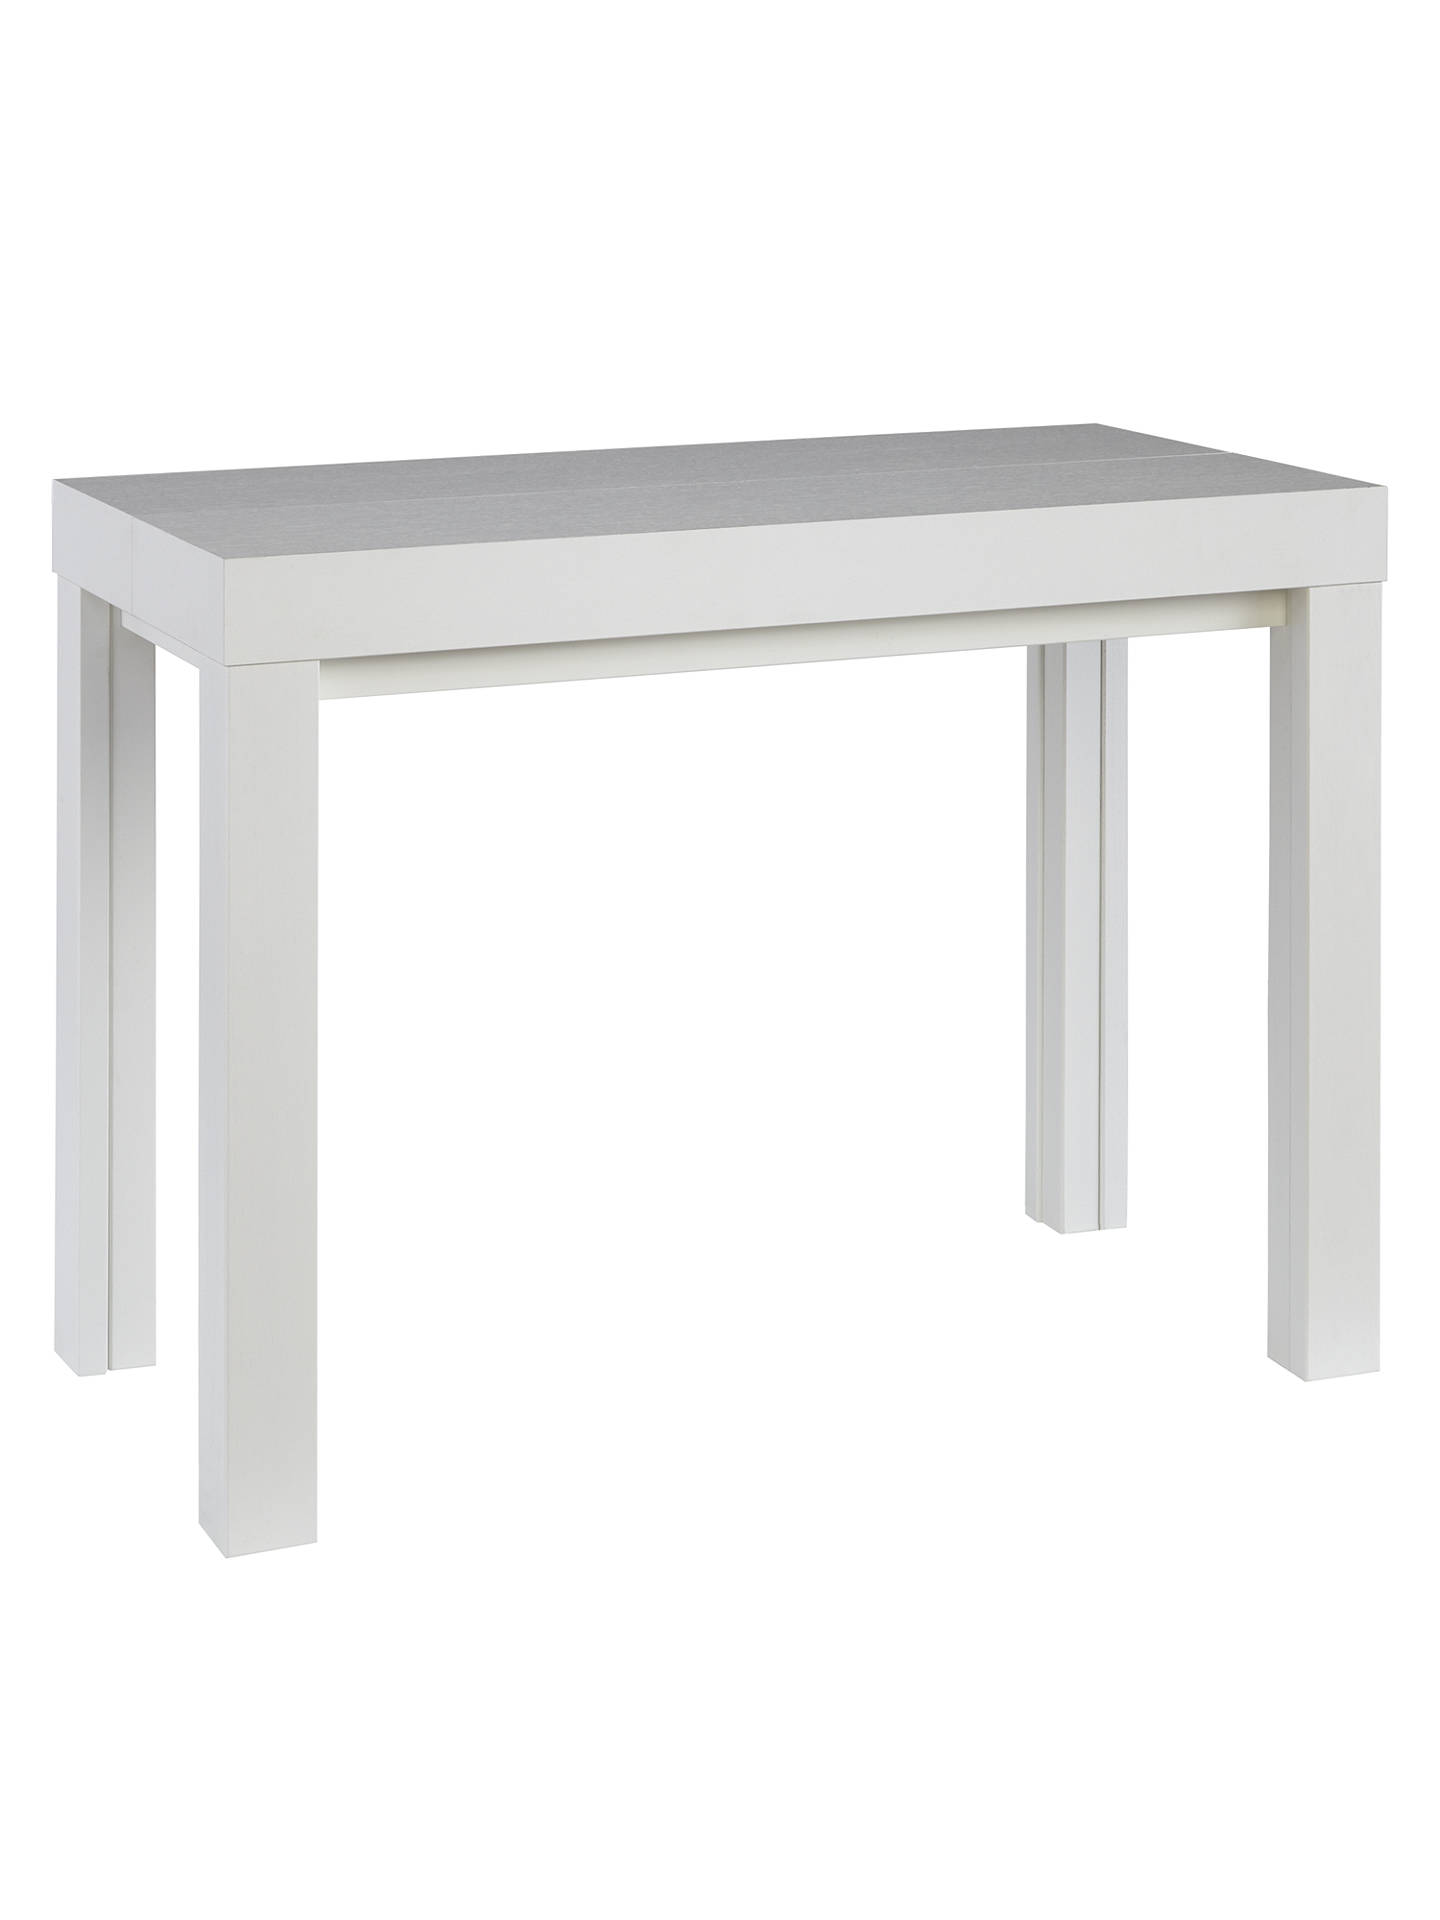 John Lewis Cosmo 12 Seater Extending Console And Dining Table White Online At